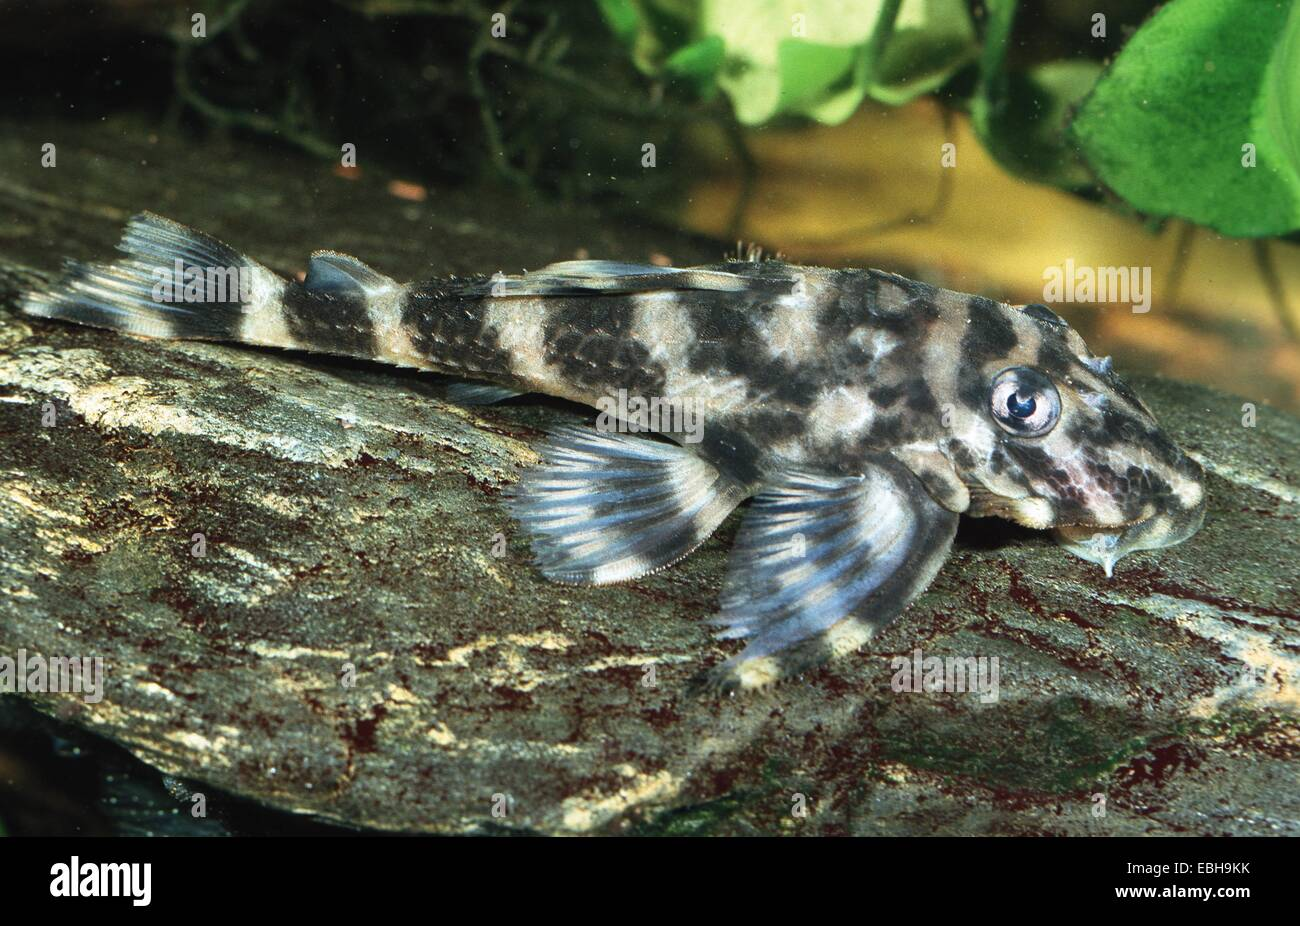 Pleco Stock Photos & Pleco Stock Images - Page 2 - Alamy